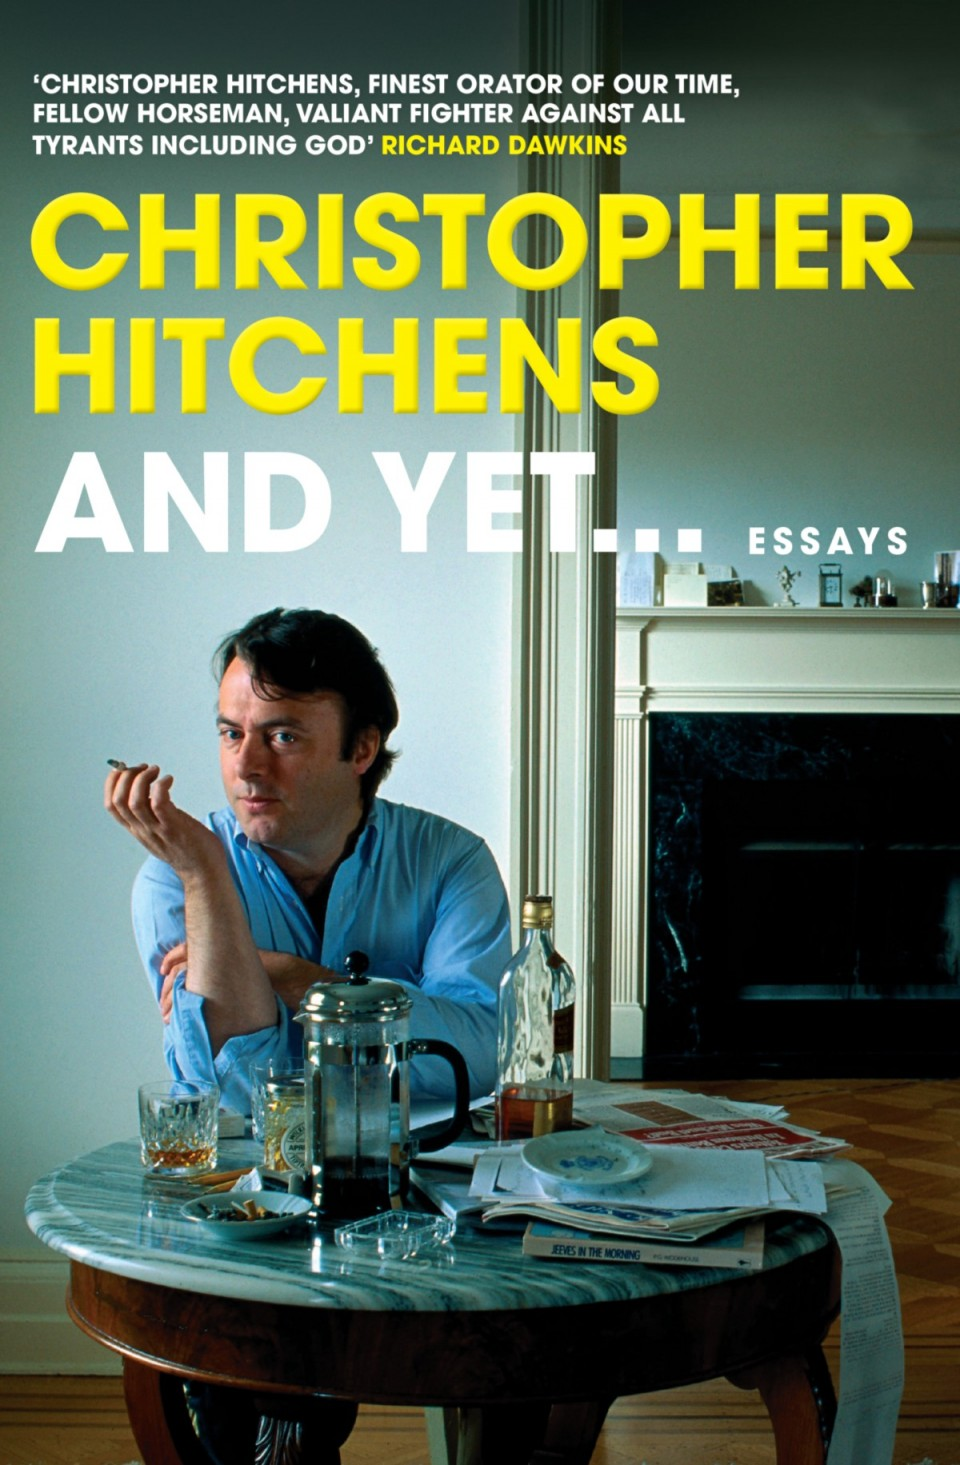 001 Essay Example Christopher Hitchens Essays 1xr Archaicawful On Dickens Literary Pdf 960